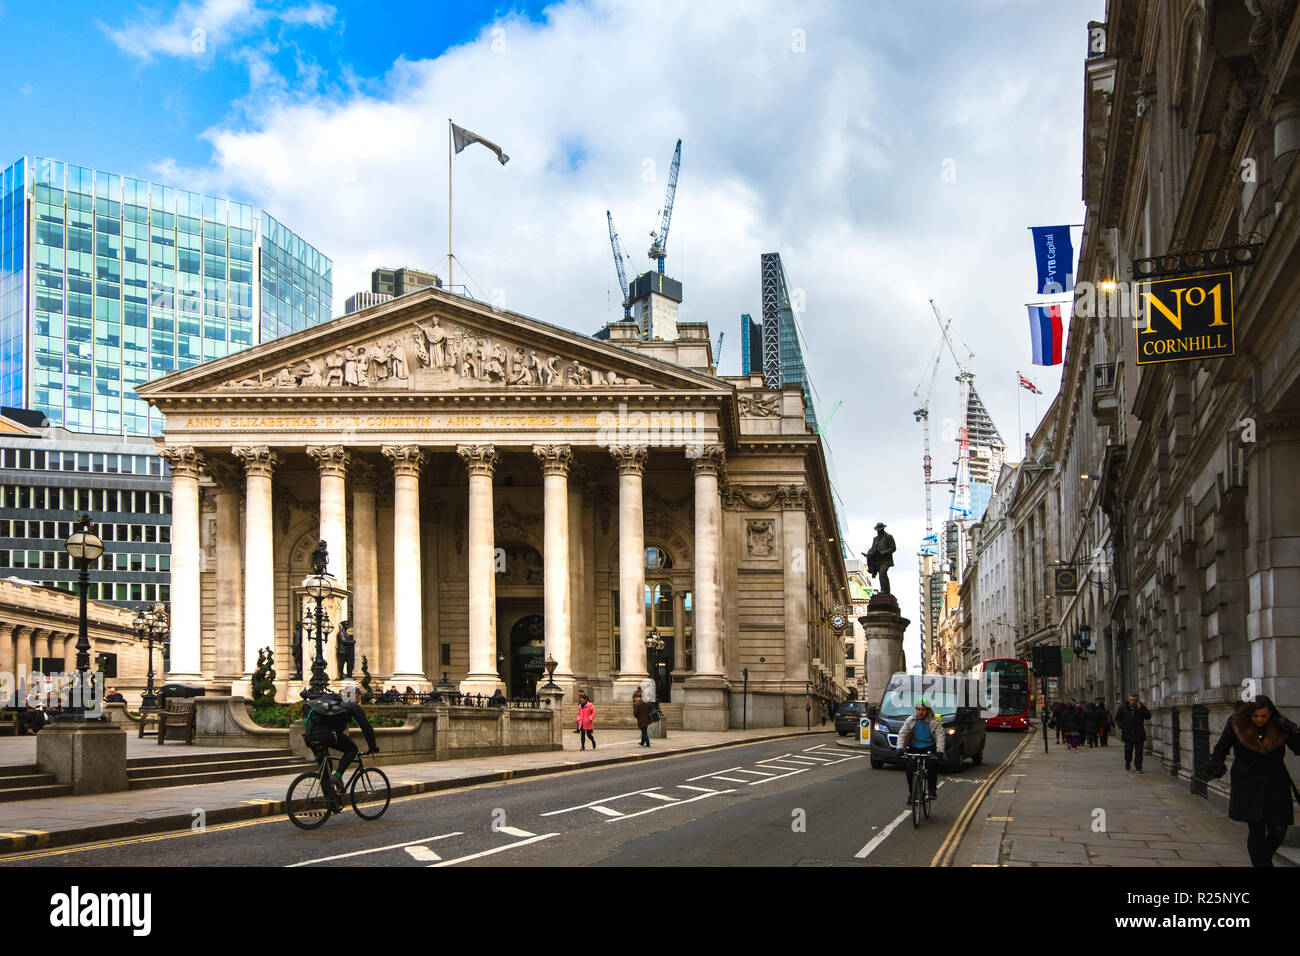 LONDON. ENGLAND - March 20 2018: Wide view of the Royal Exchange building and surrounding area on a sunny day in spring. - Stock Image